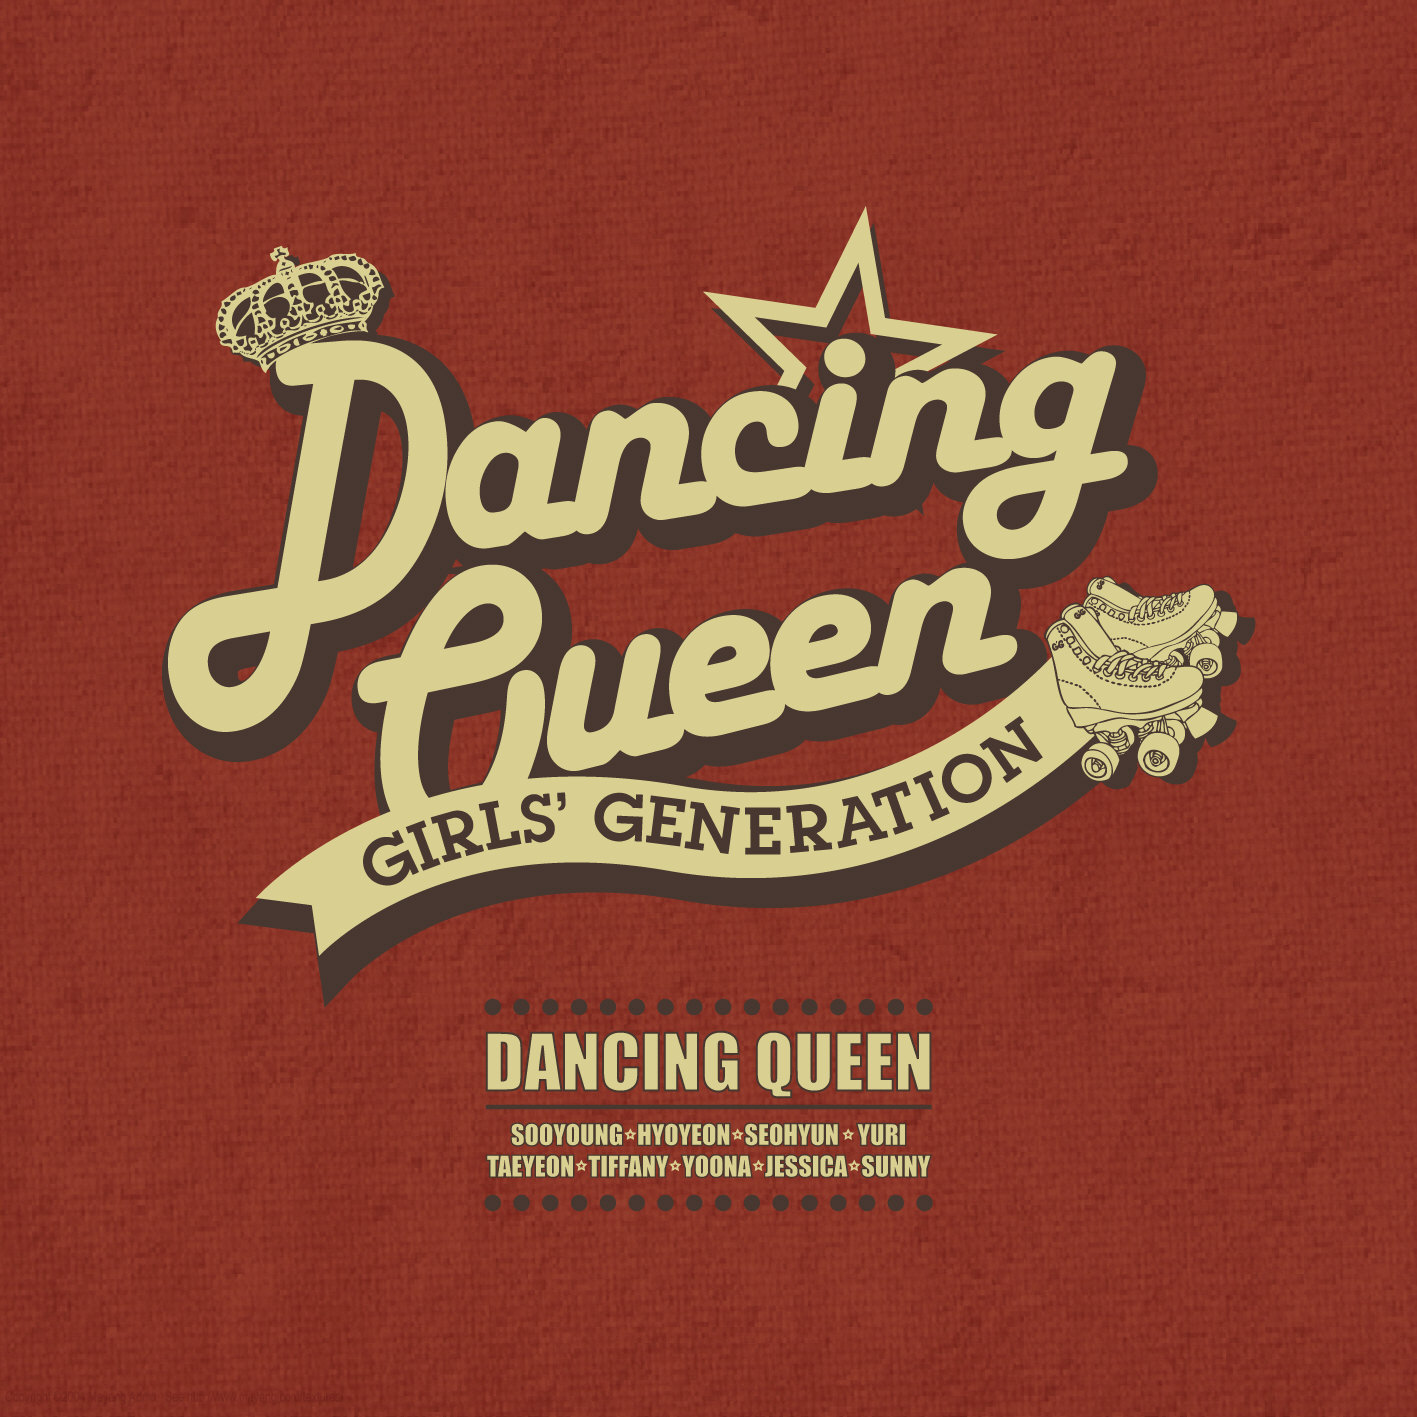 Dancing Queen (Girls' Generation) | Kpop Wiki | FANDOM